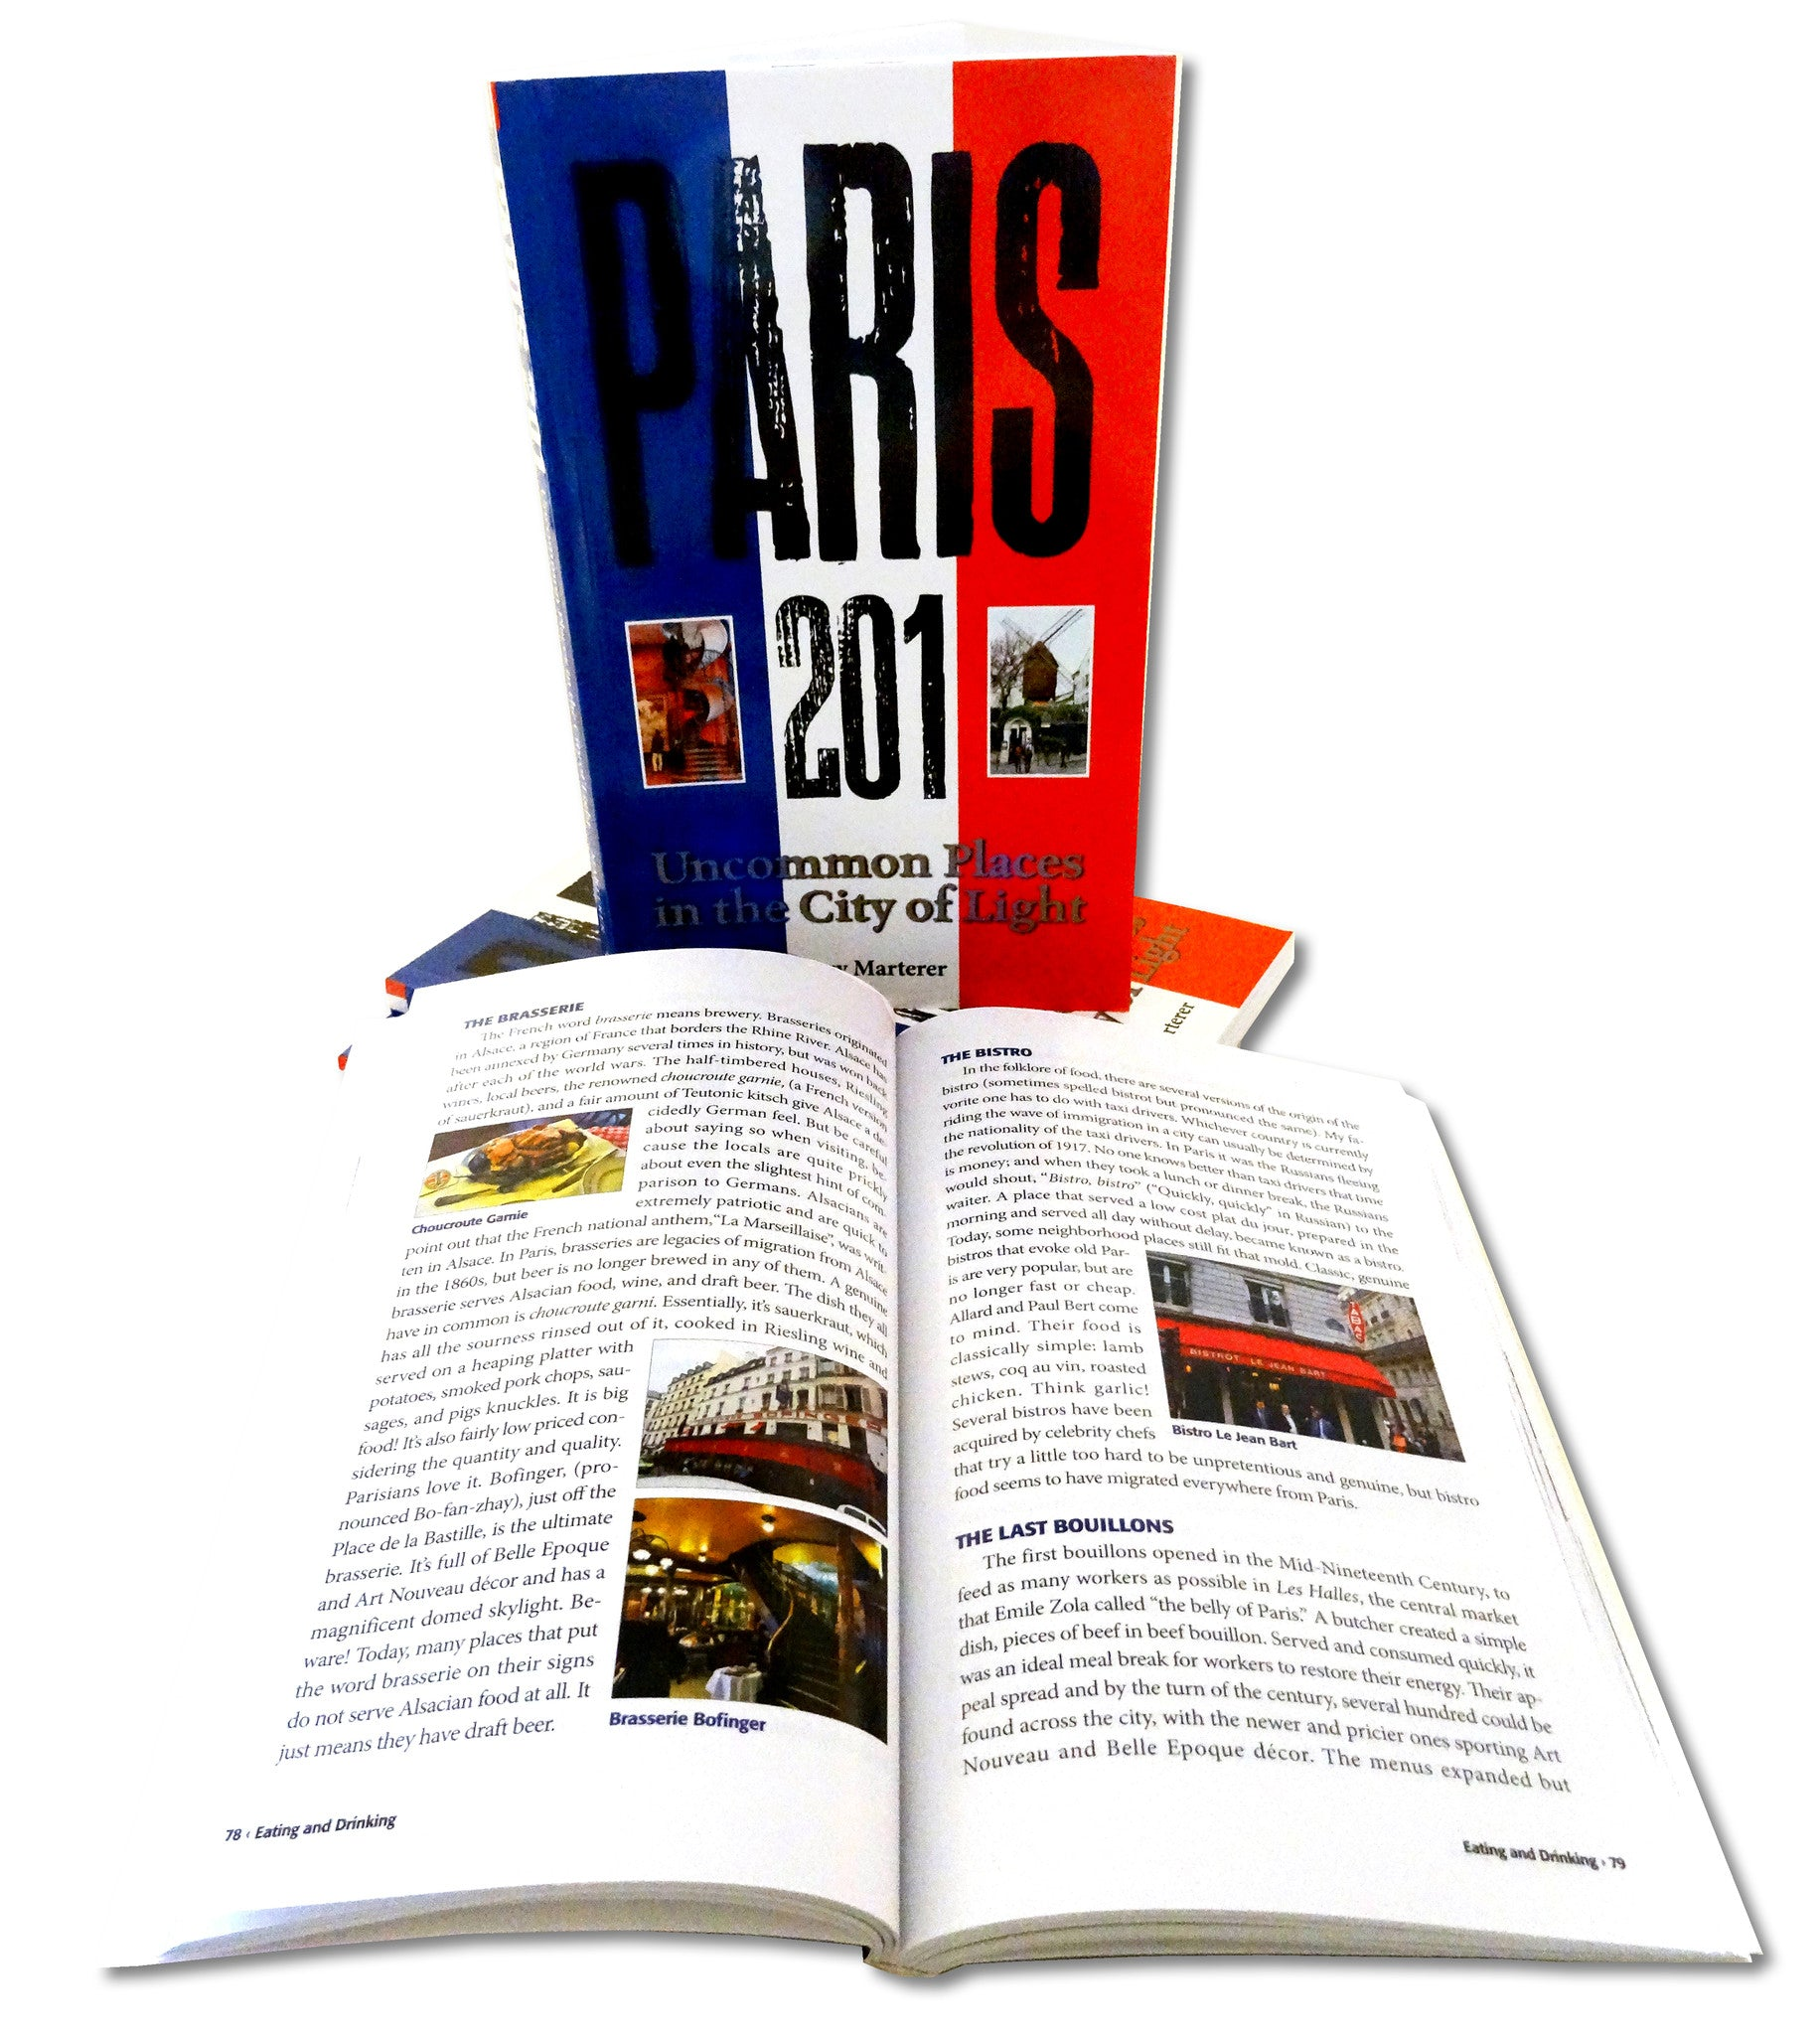 Paris 201: Uncommon Places in the City of Light book by Jerry